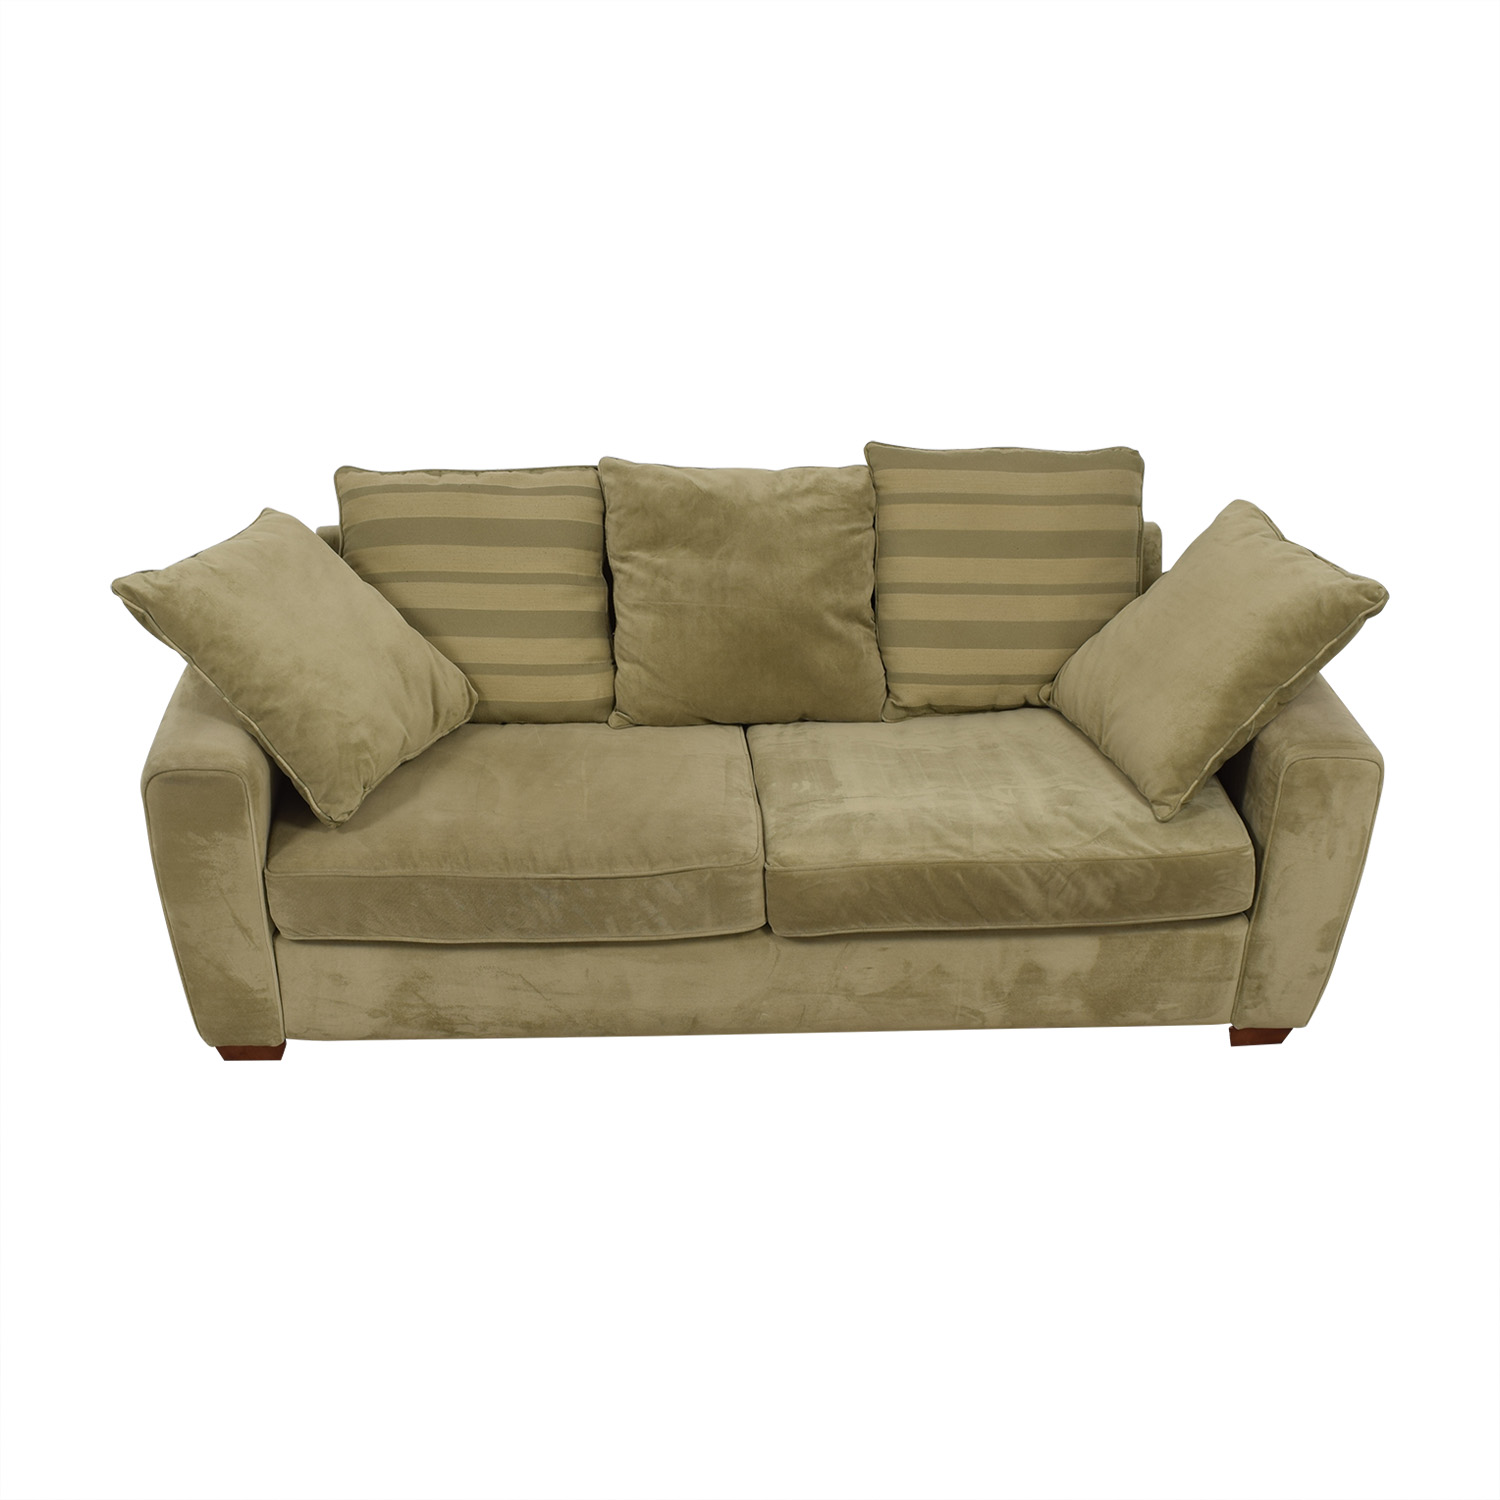 Jennifer Furniture Jennifer Furniture Tan Two-Cushion Sofa Classic Sofas